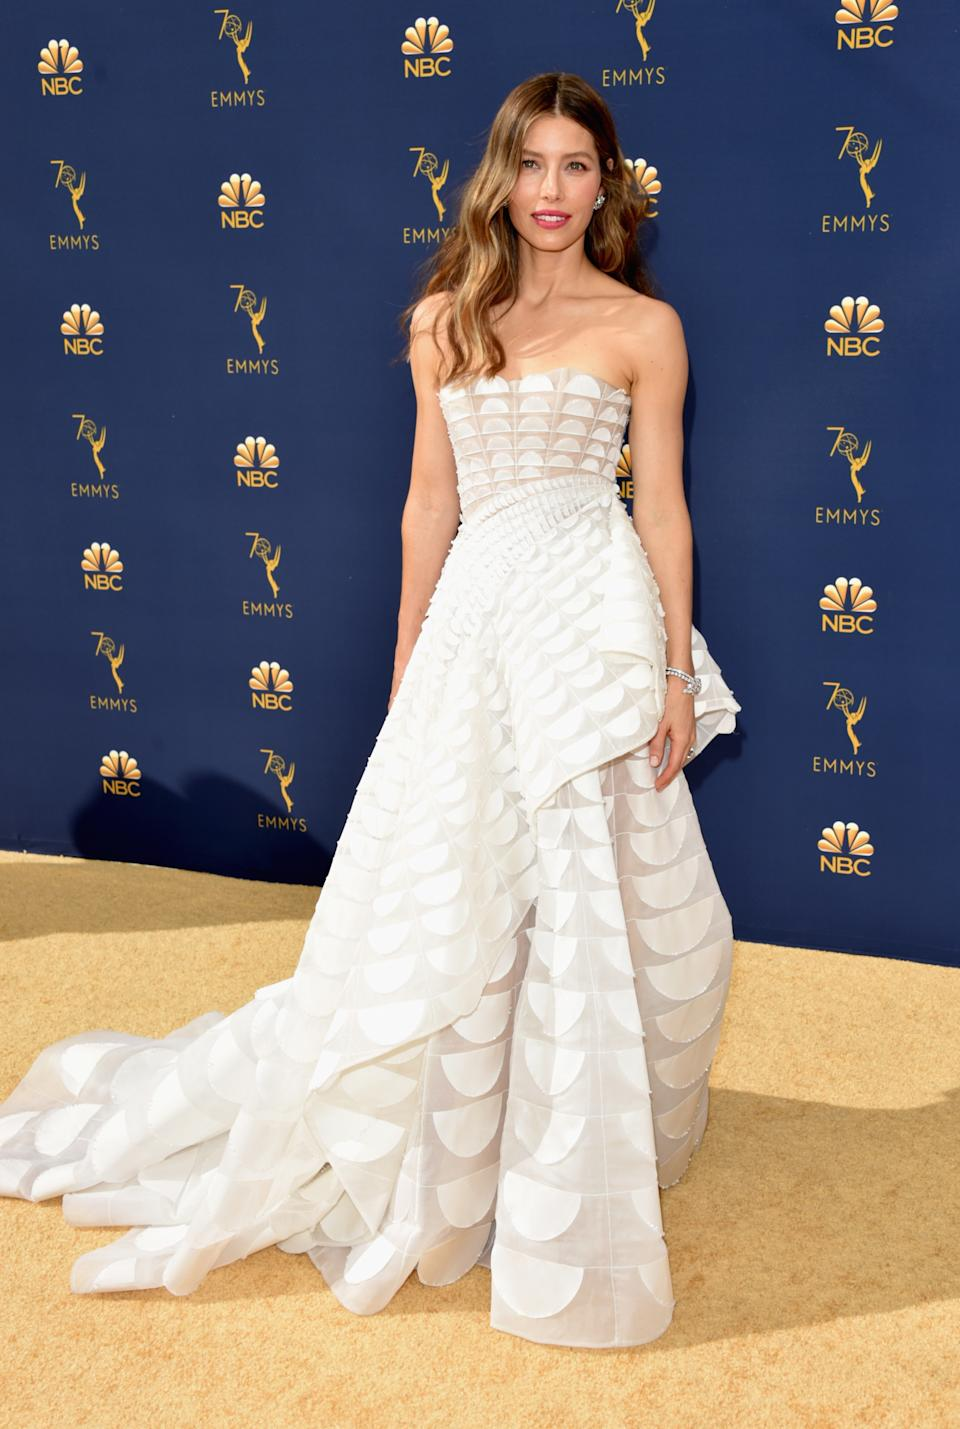 <p>Jessica Biel looked glamorous in a strapless gown with geometric detailing by Ralph & Russo at the 2018 Emmy Awards. (Image via Getty Images)</p>